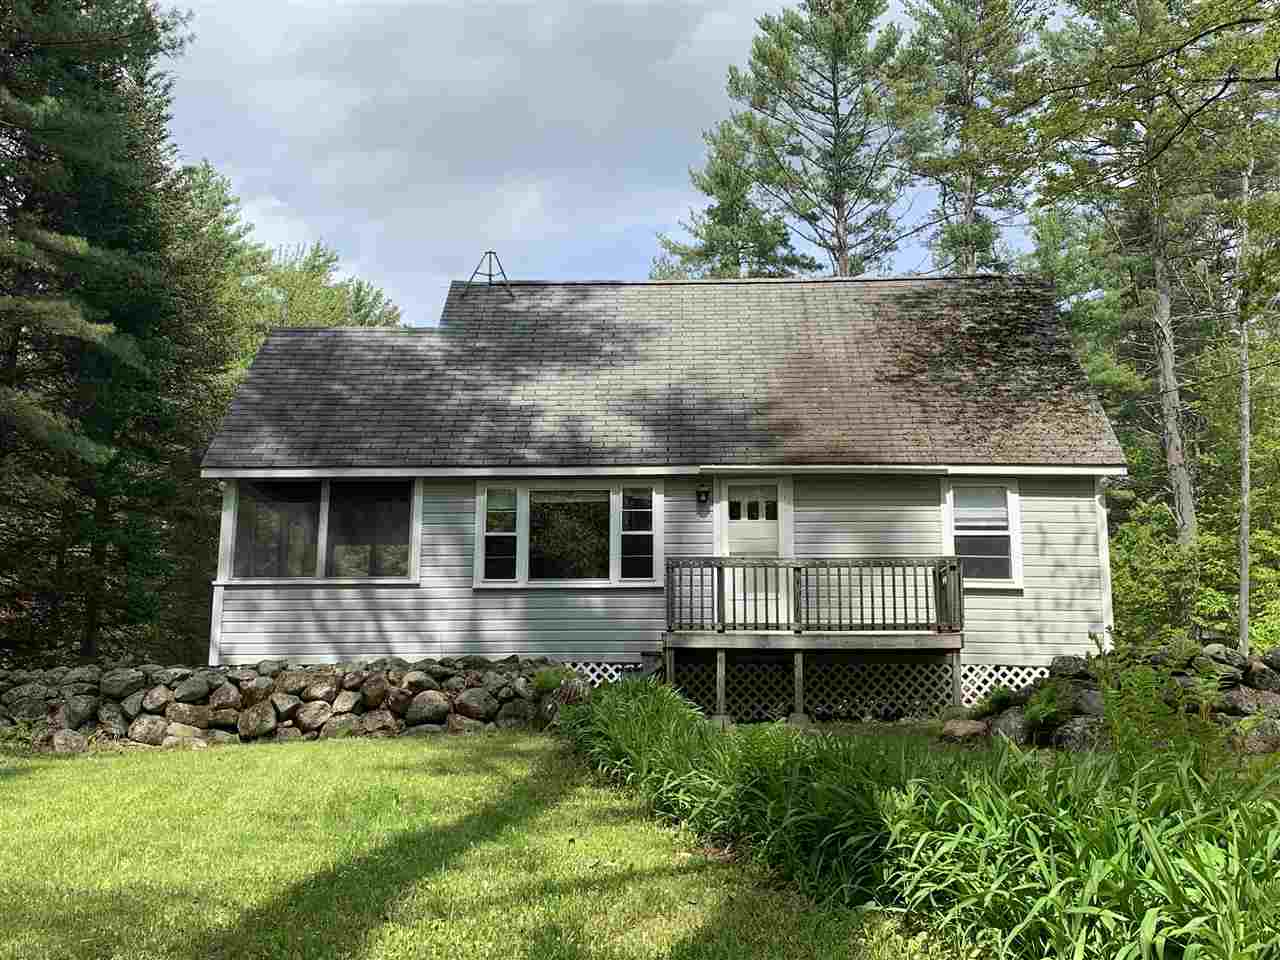 MLS 4762797: 55 South Pine Street, Bridgewater NH